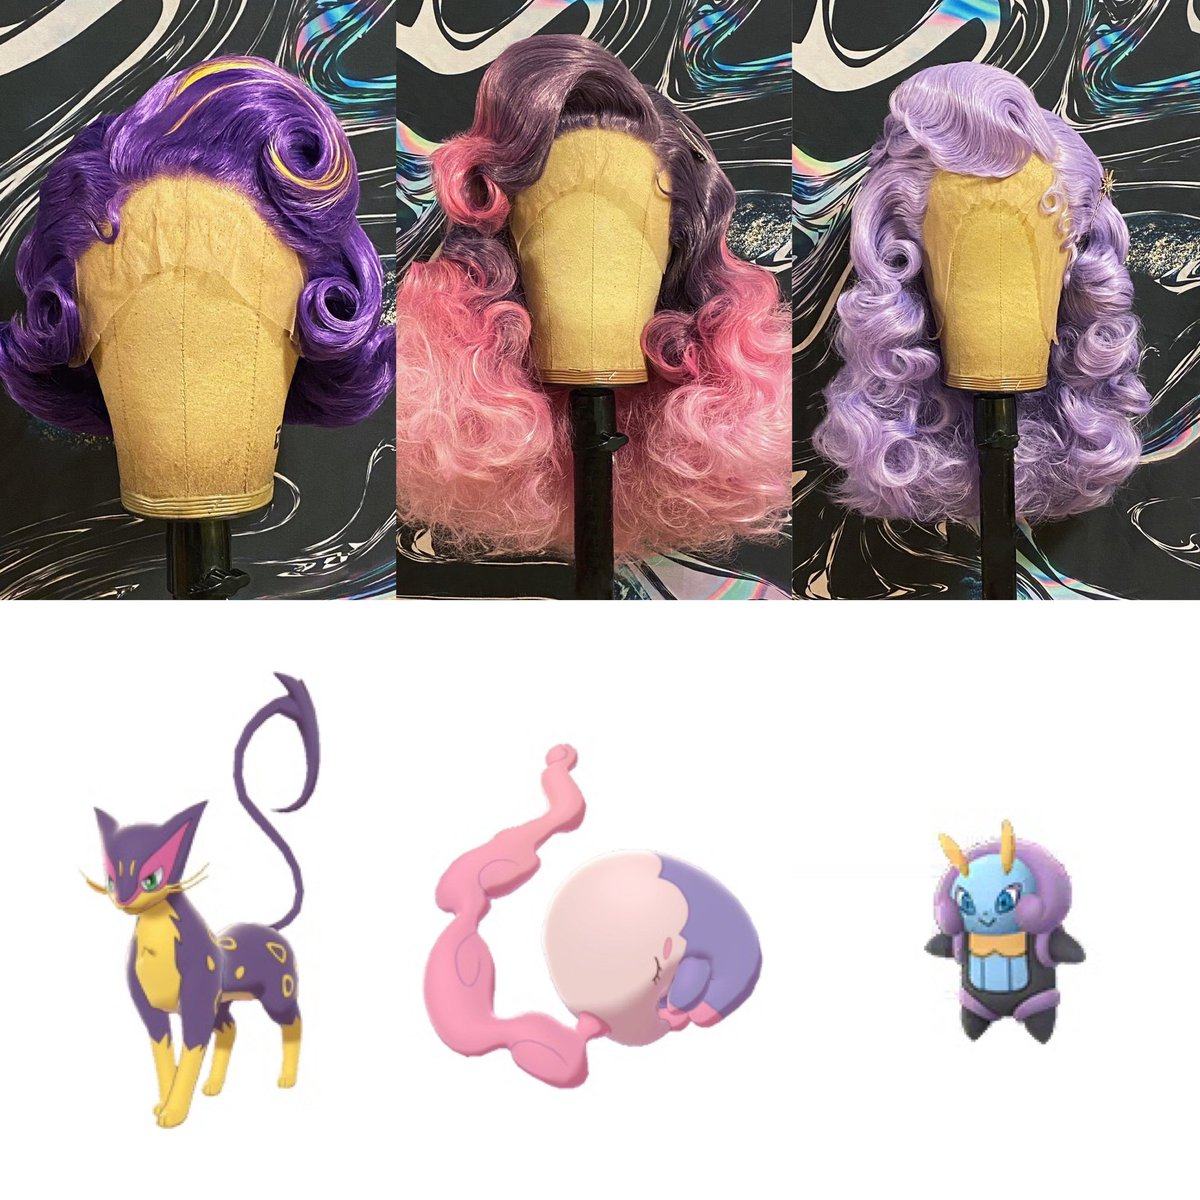 I saw that #katyperryxpokemon was trending ... so i made wigs based on some of the little glamour monsters